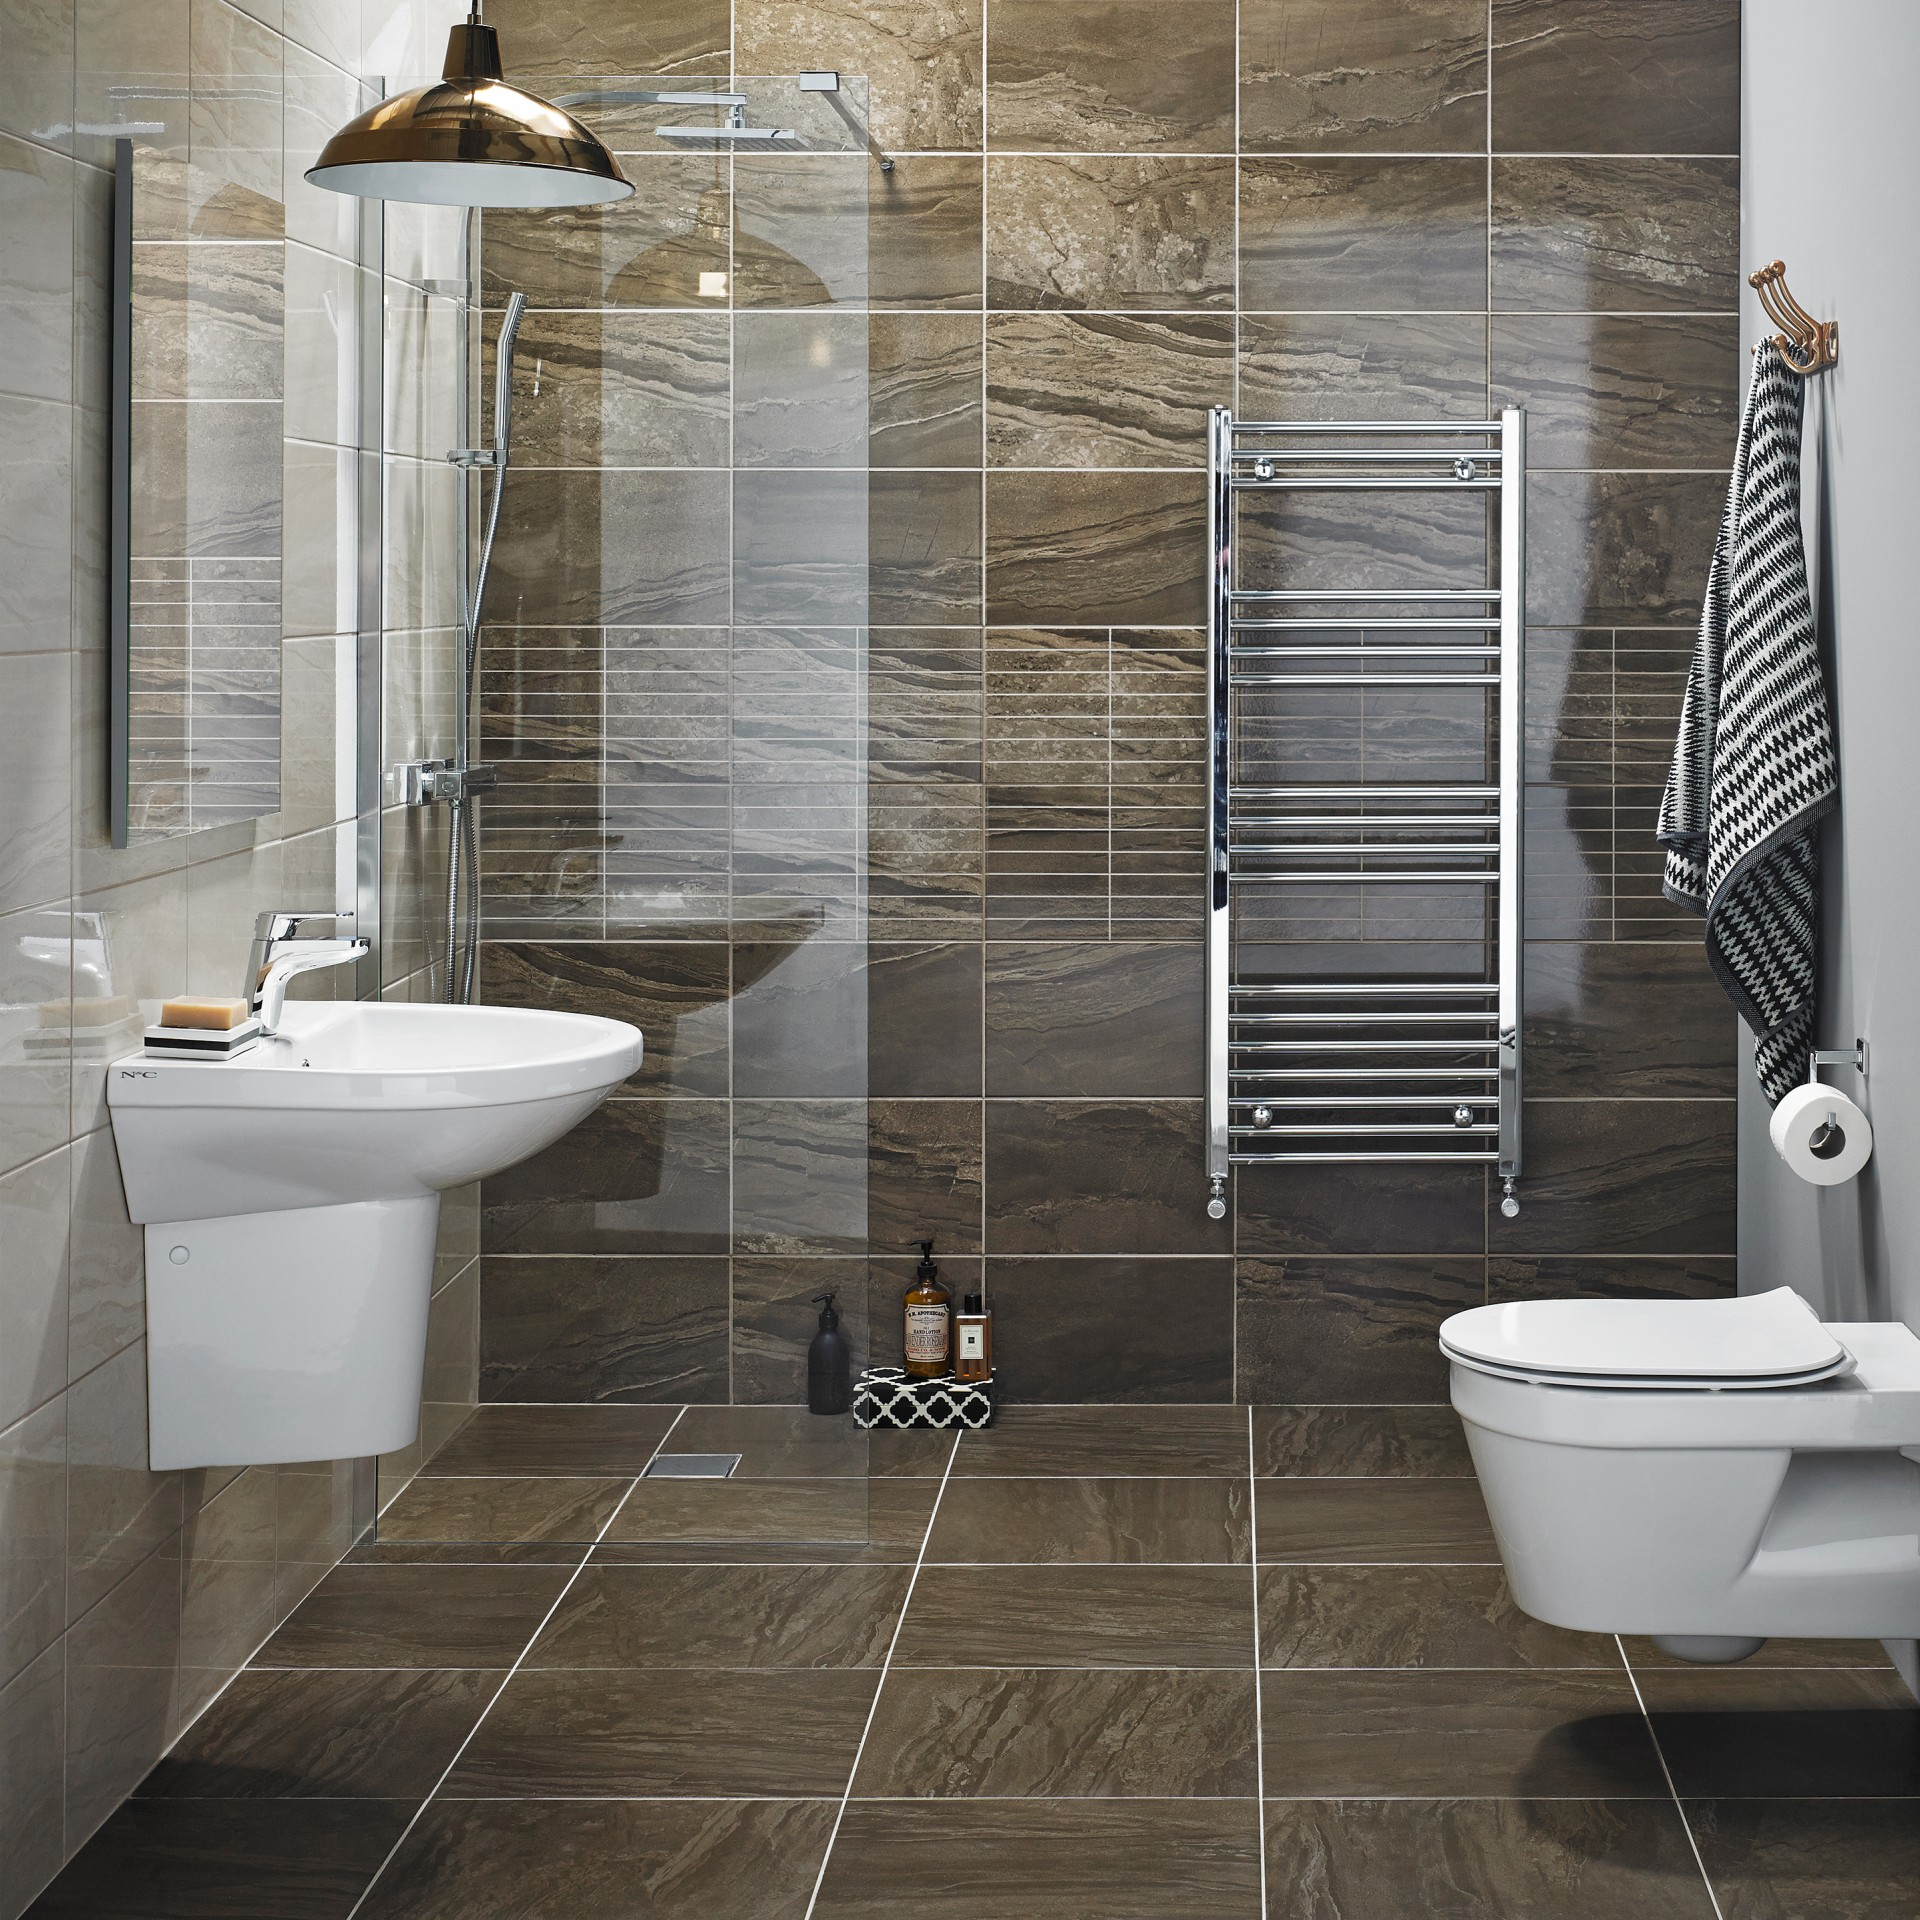 N c tiles and bathrooms Home depot free bathroom design